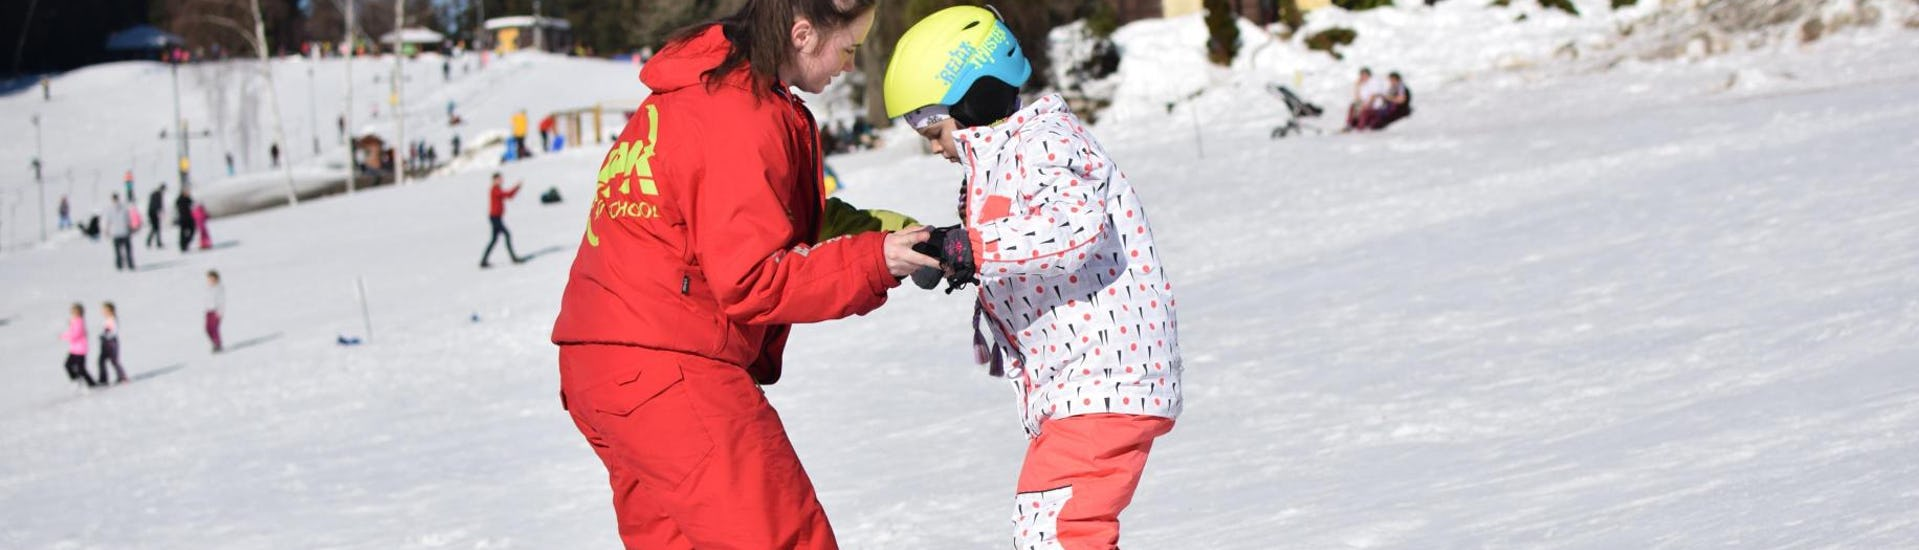 snowboard-instructor-private-for-kids-adults---all-levels-1-1-1-1-1-1-1-1-1-1-hero3